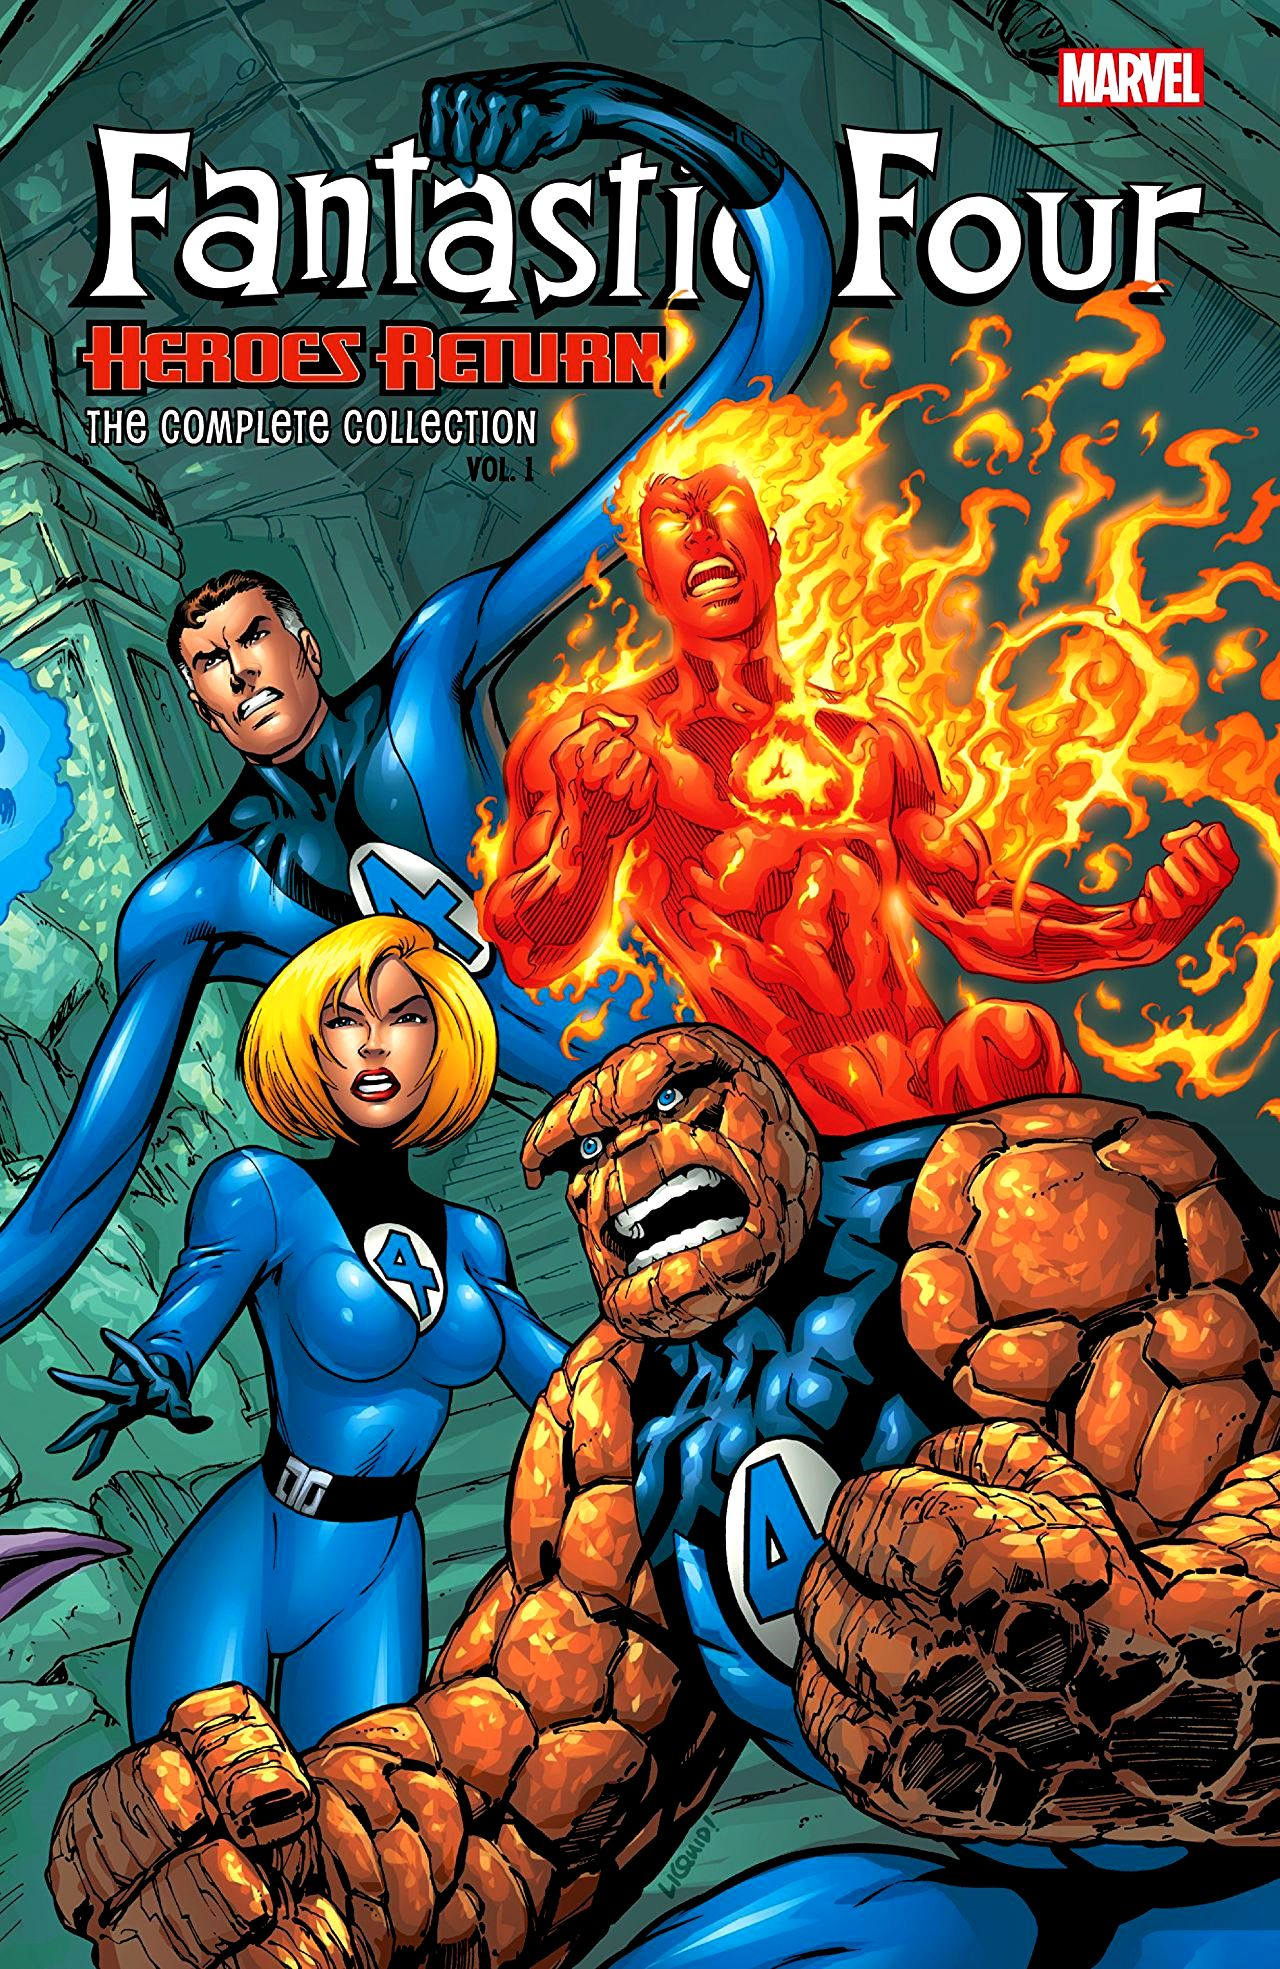 Fantastic Four (1998): Heroes Return - The Complete Collection Volume 1